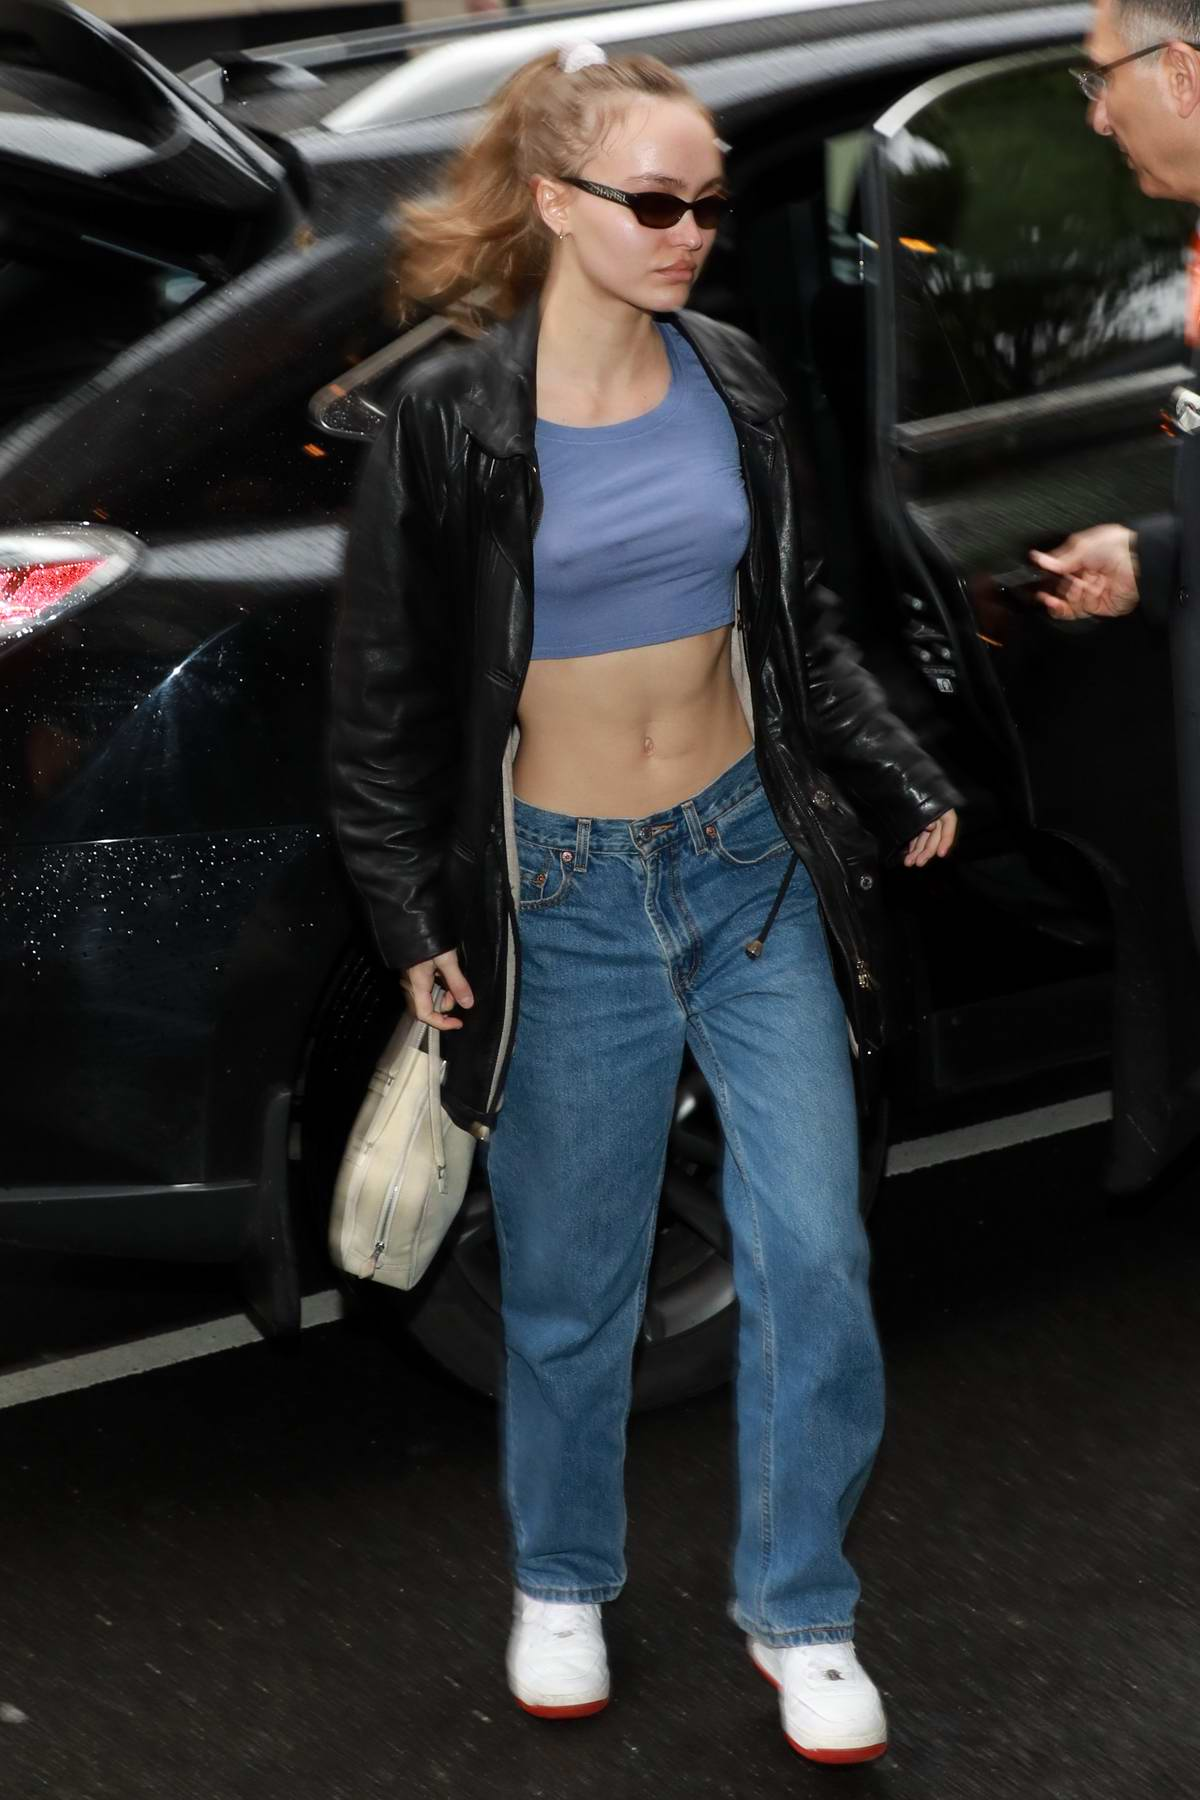 Lily-Rose Depp flaunts her toned abs in a blue crop top as